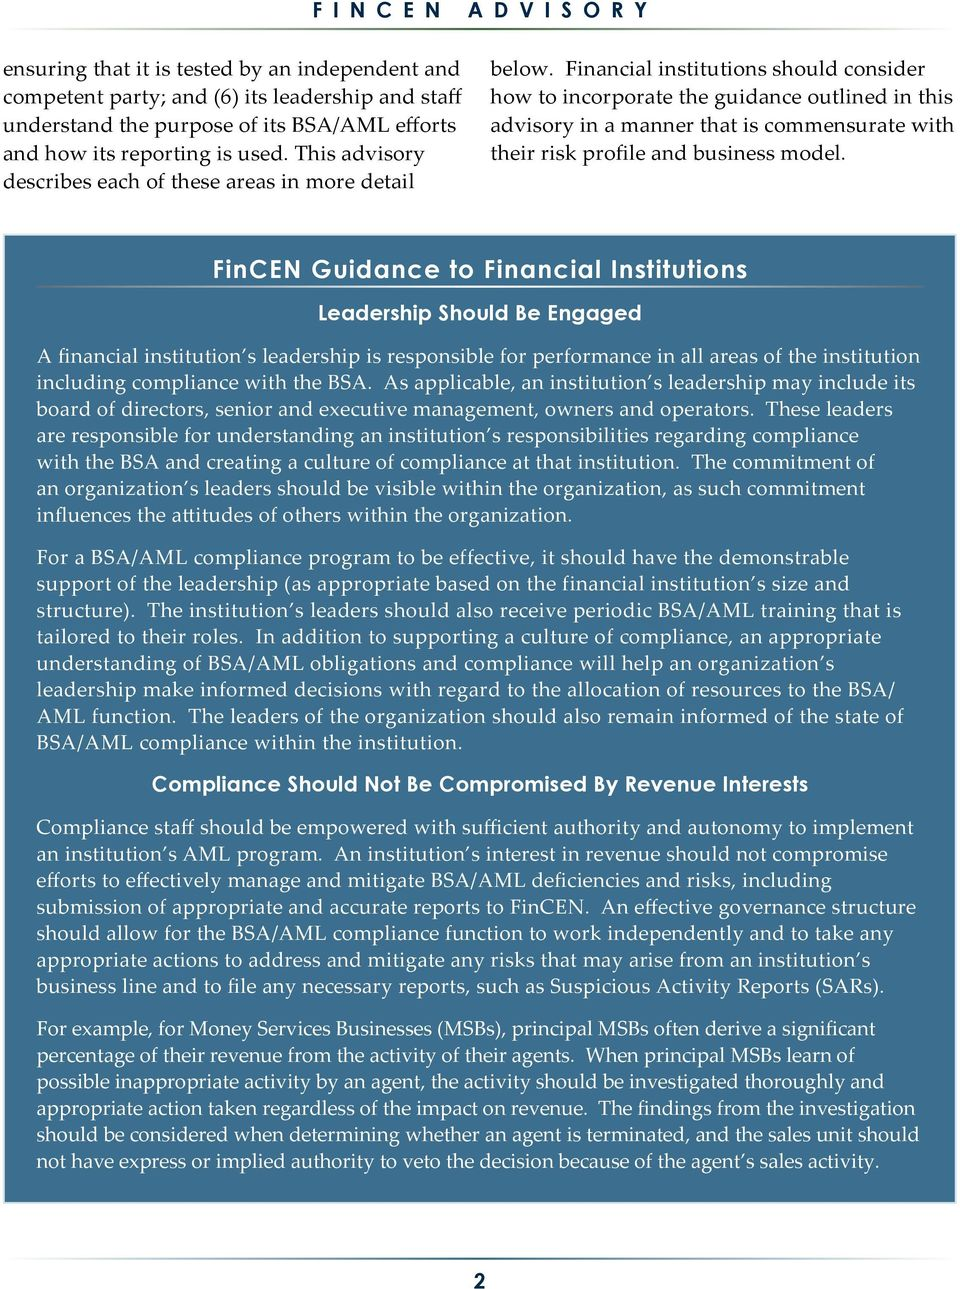 Financial institutions should consider how to incorporate the guidance outlined in this advisory in a manner that is commensurate with their risk profile and business model.